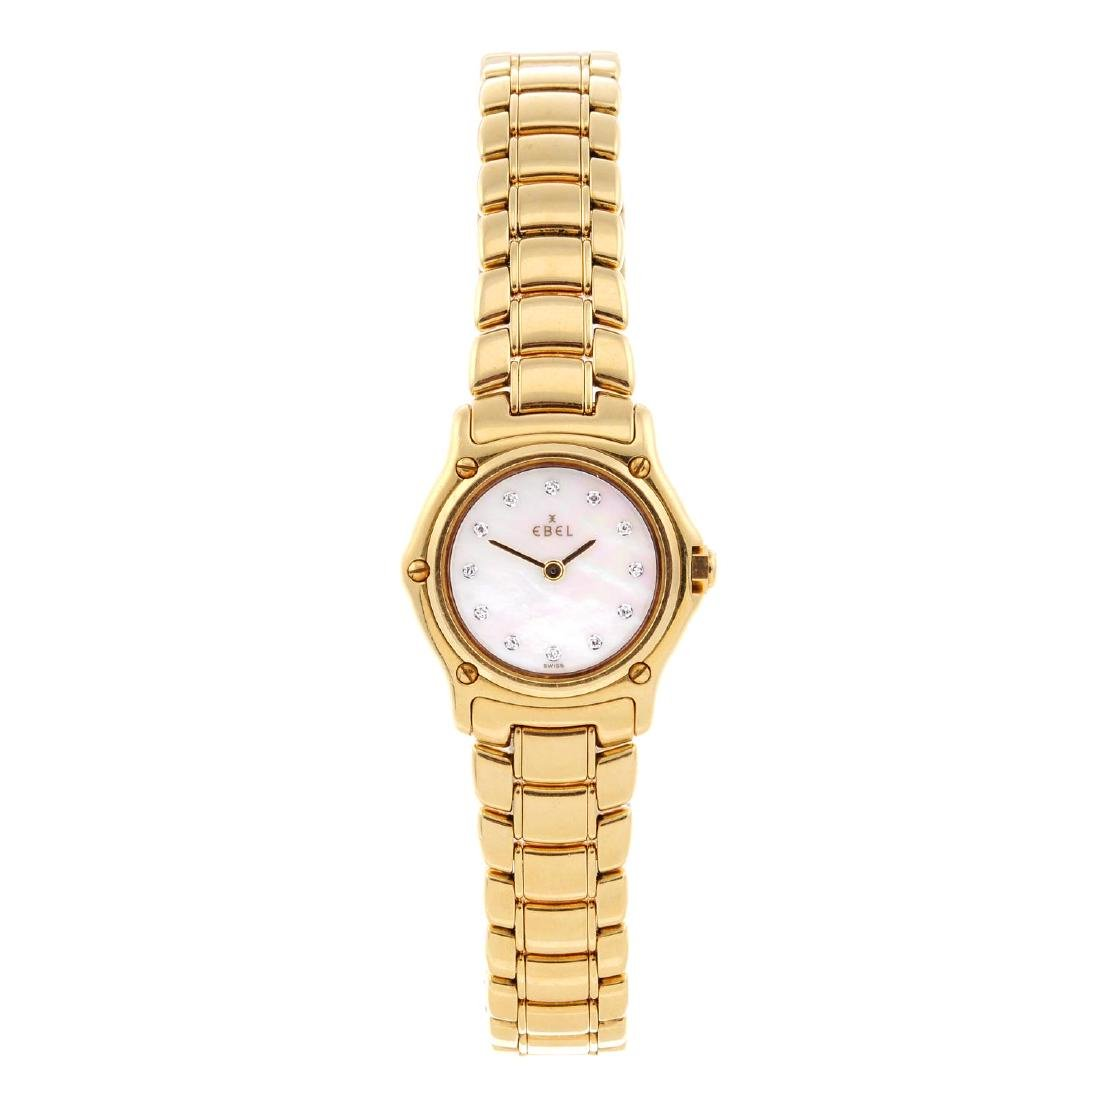 EBEL - a lady's Classic Sport bracelet watch. 18ct